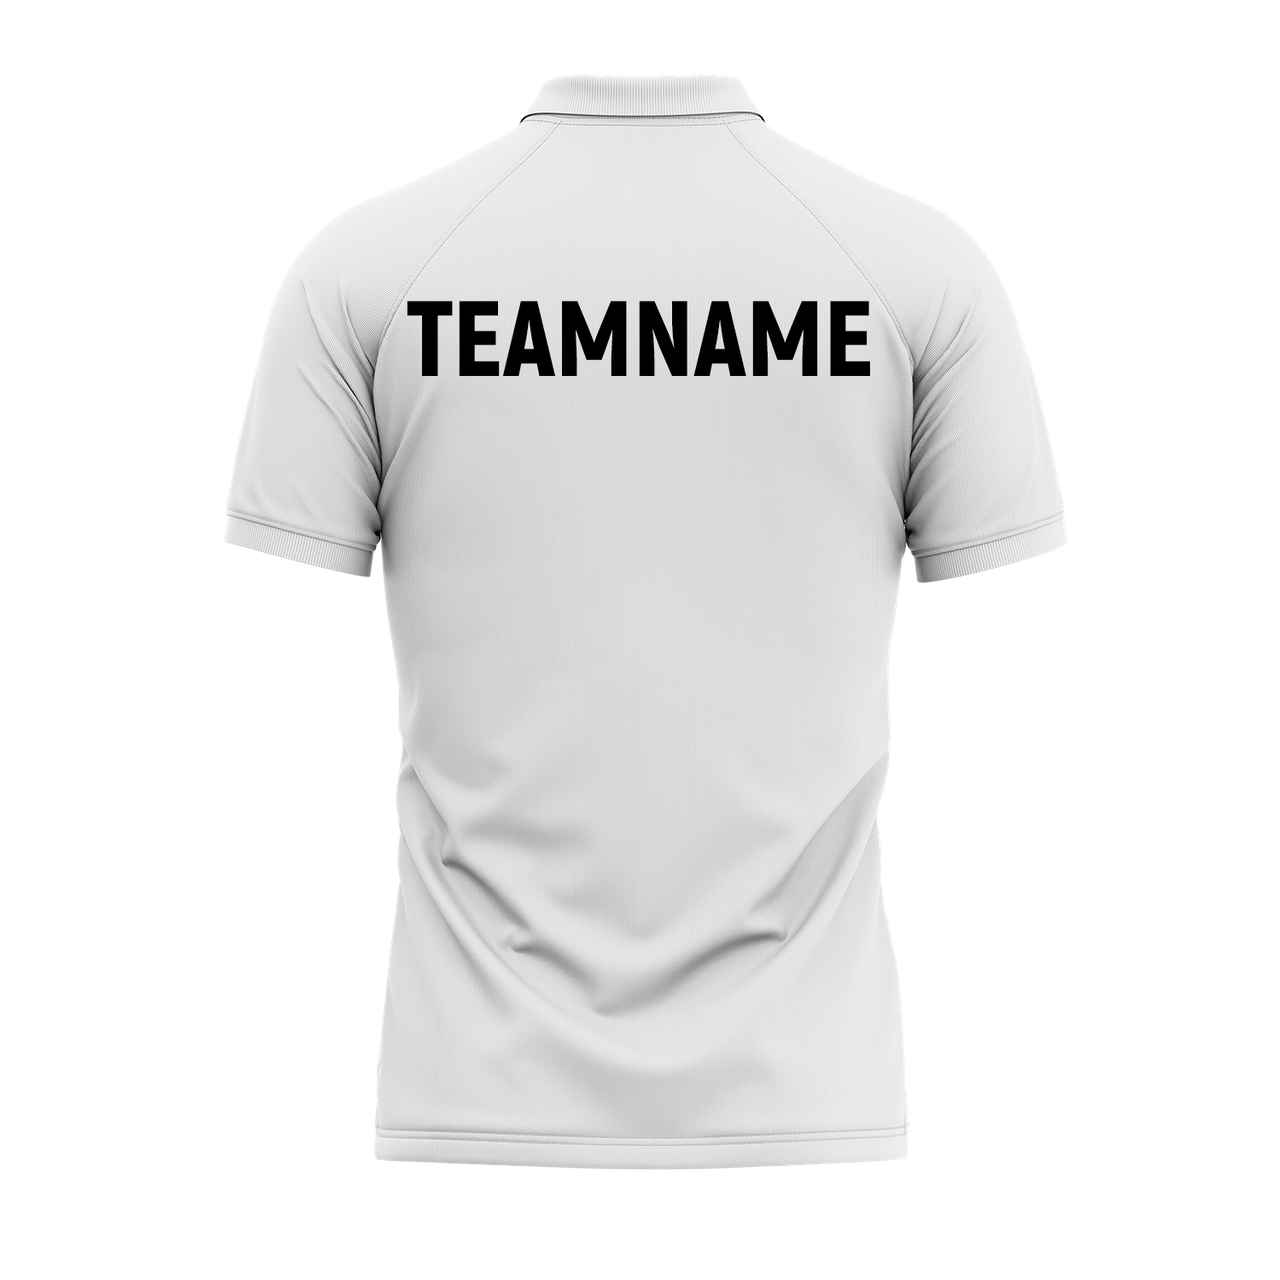 Druck Teamname